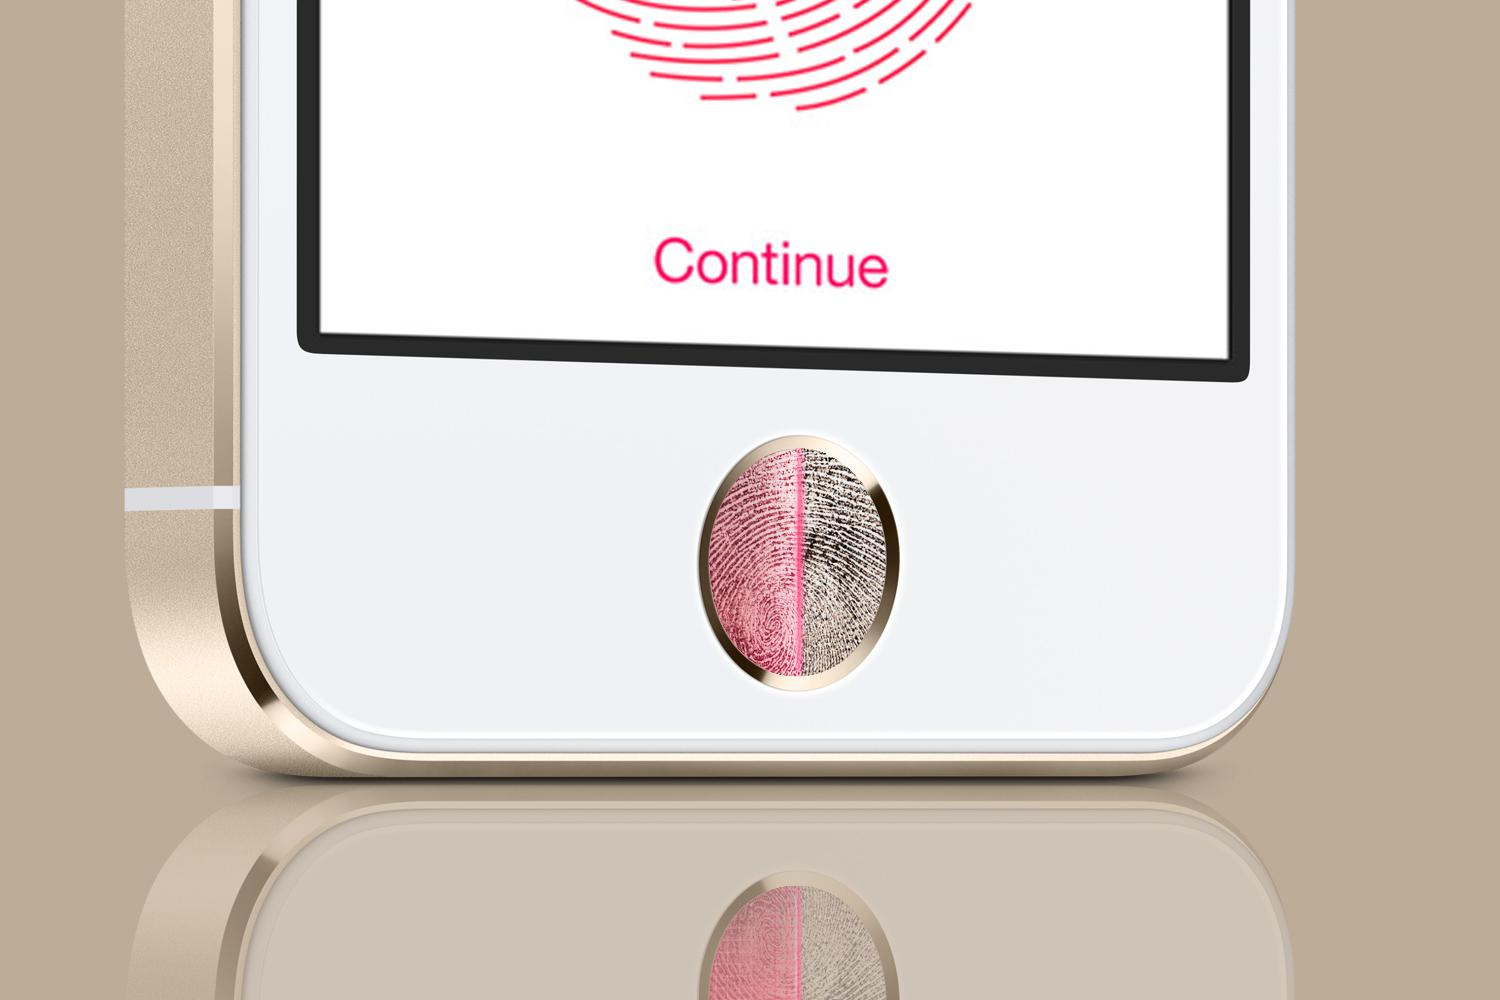 fingerprint lock for iphone 5cApple iPhone 5S Touch ID fingerprint sensor  What you need to know 9EWpZaRh